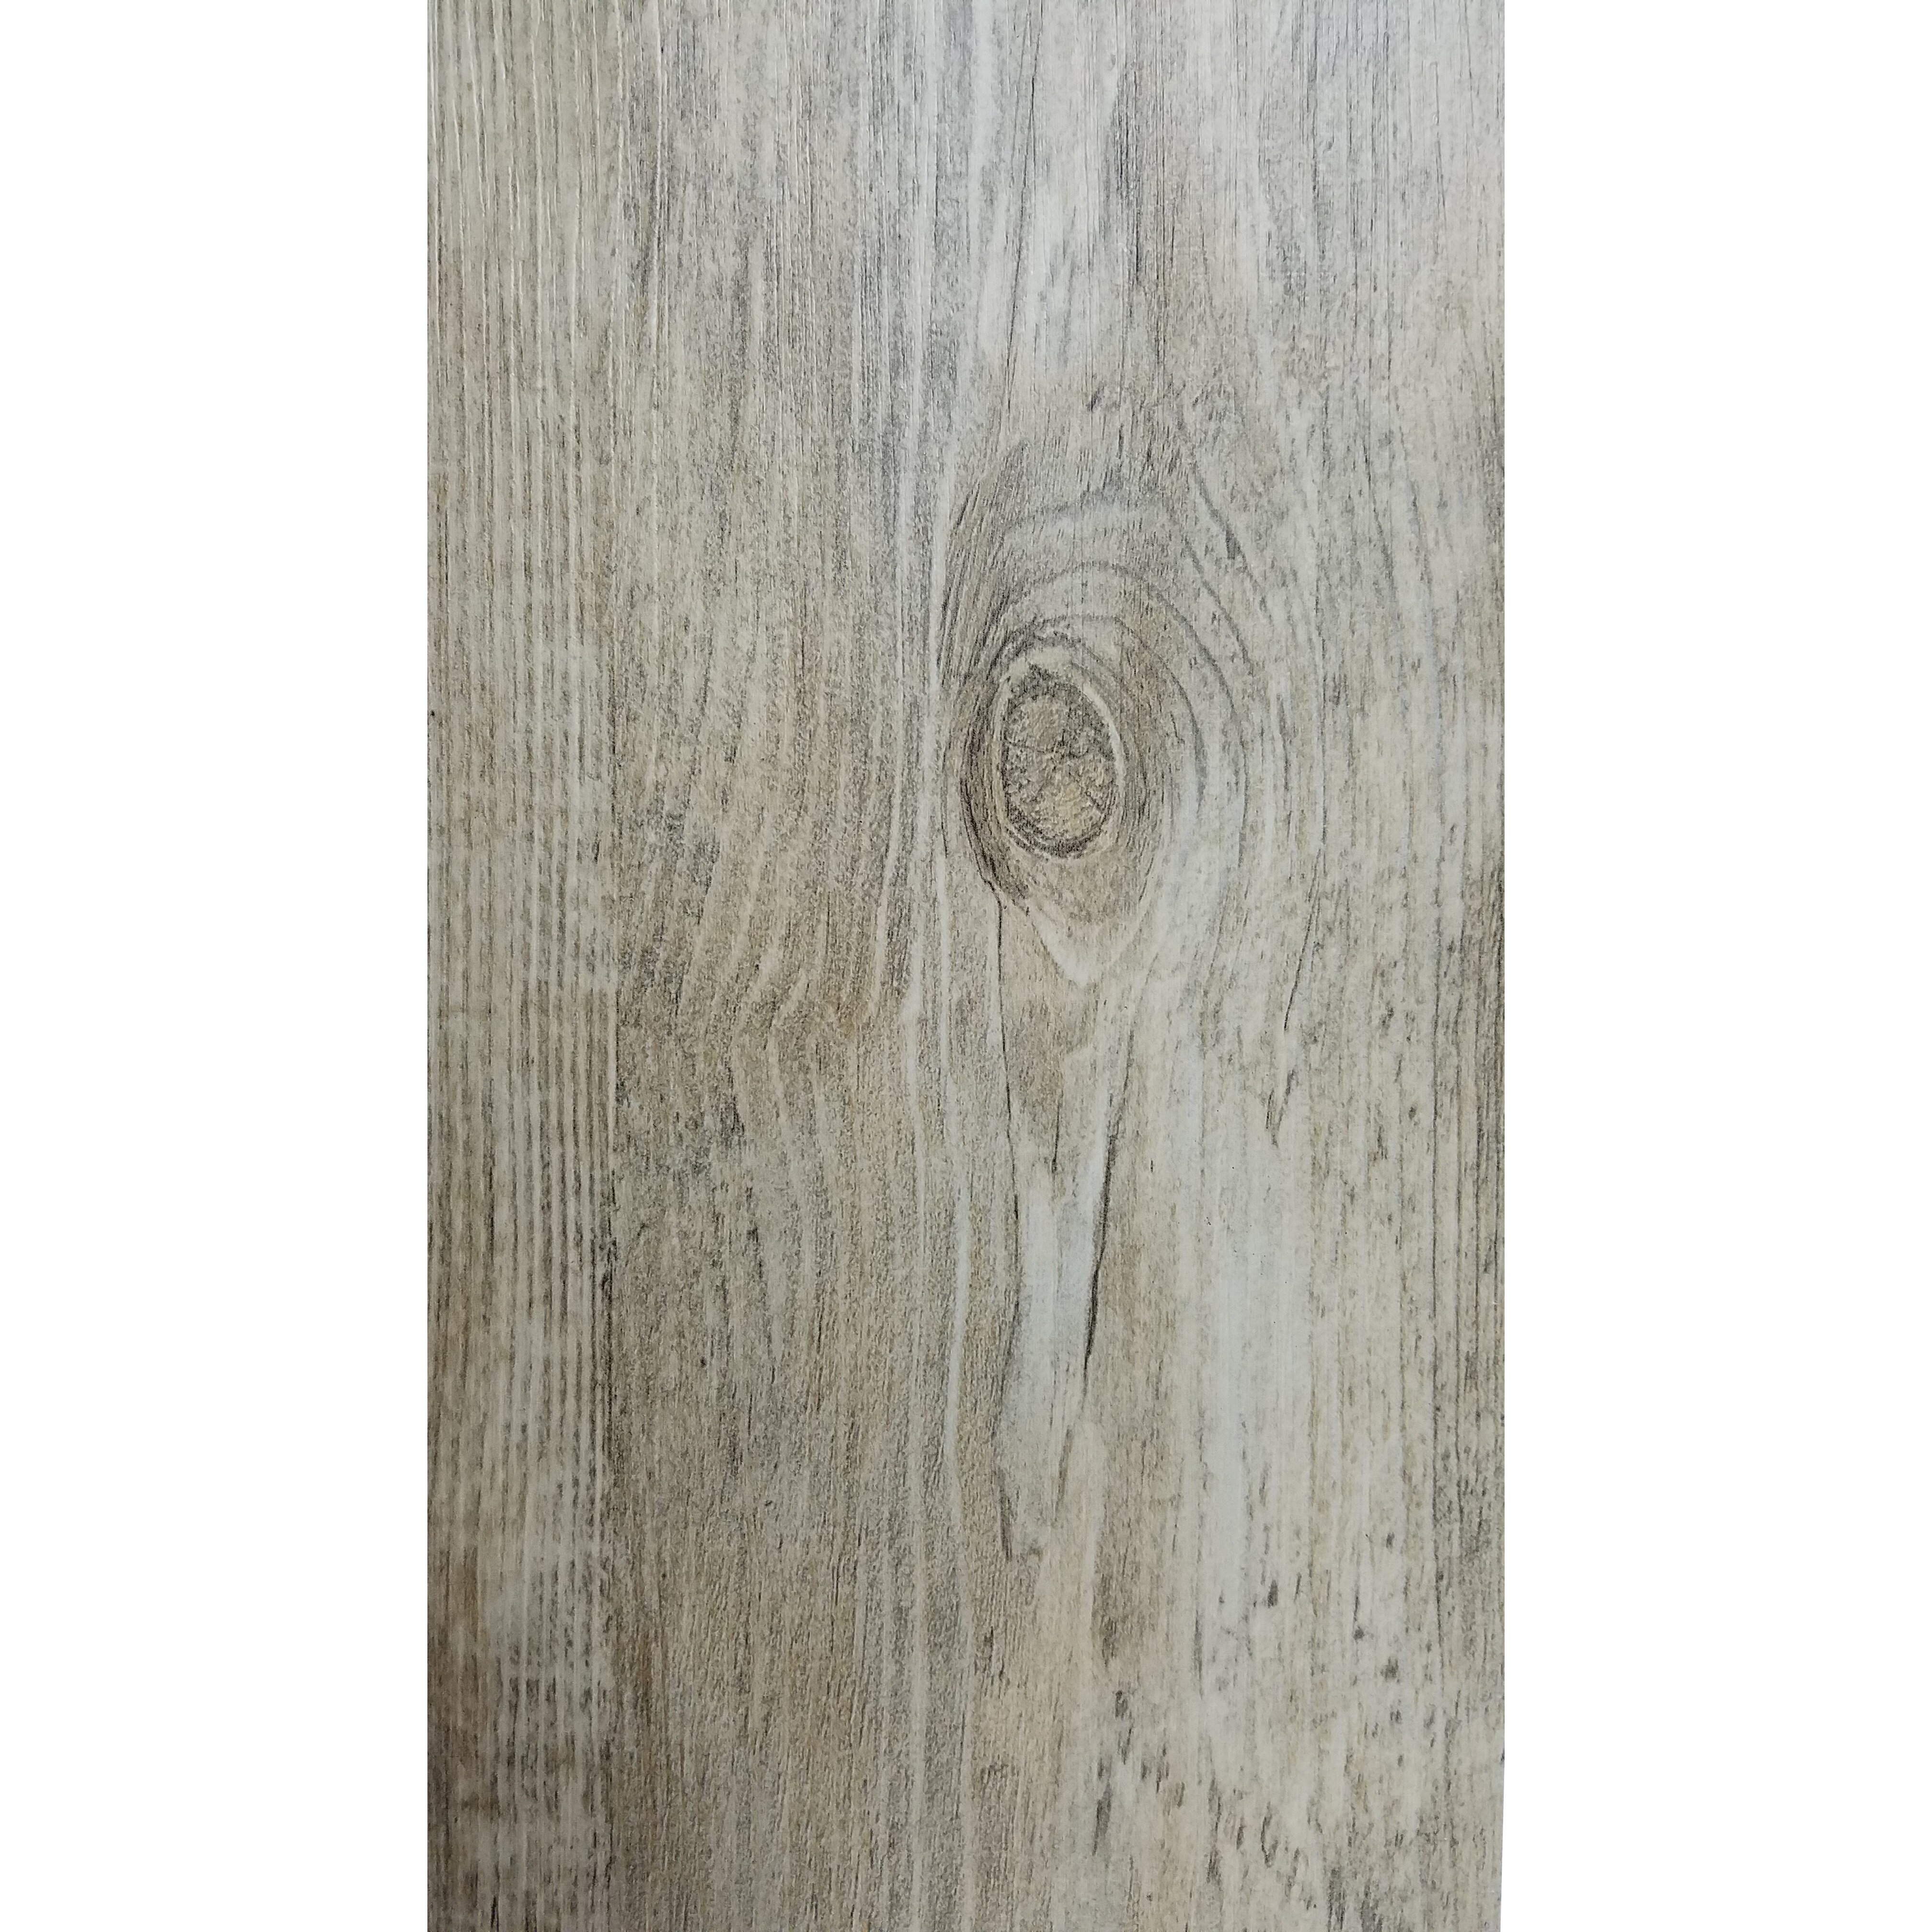 How To Repair Scratched Vinyl Plank Flooring,To.Home Plans Picture ...